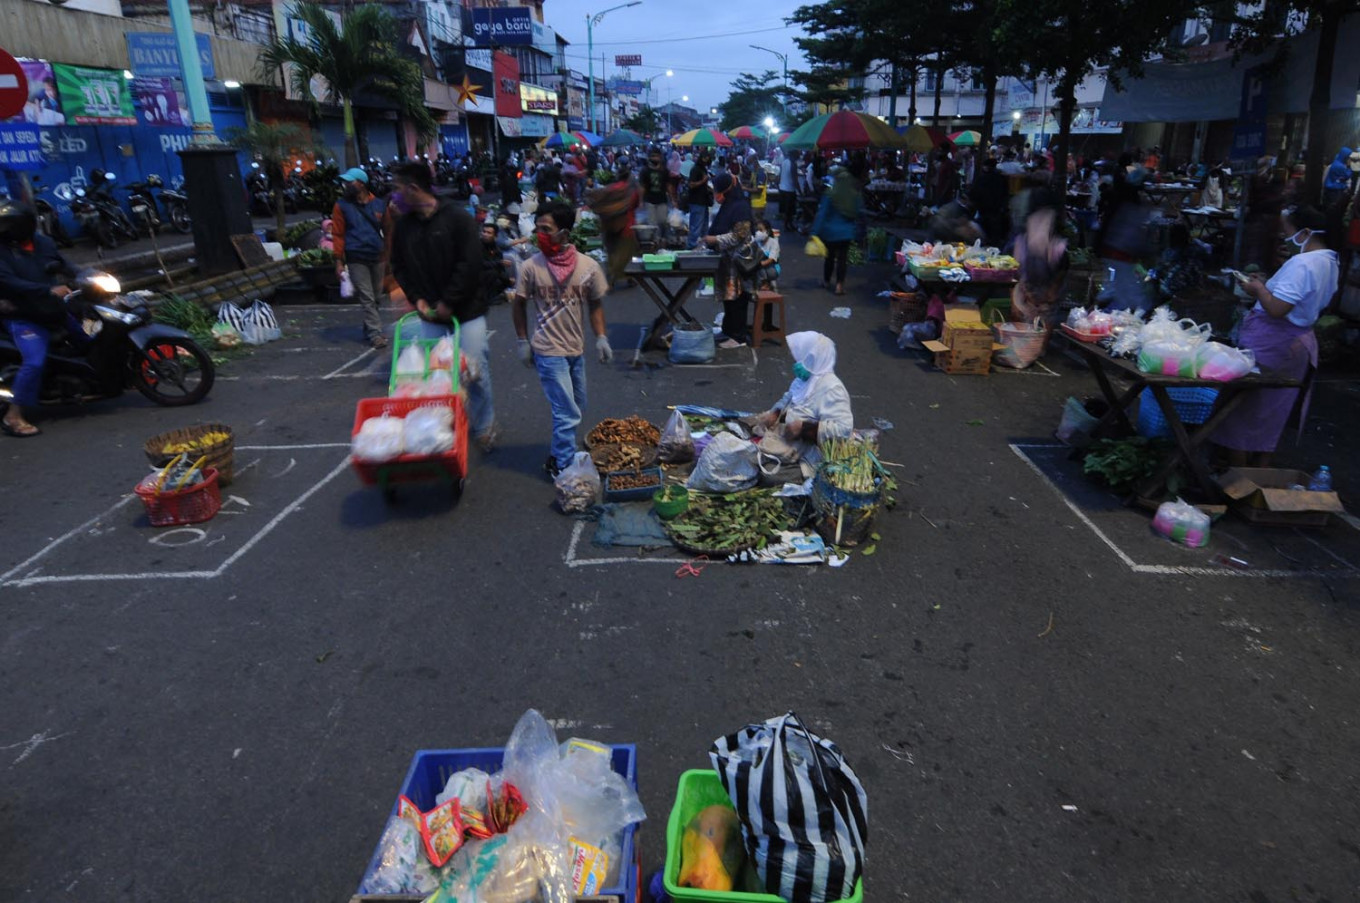 Salatiga opens traditional market with physical distancing requirements in place